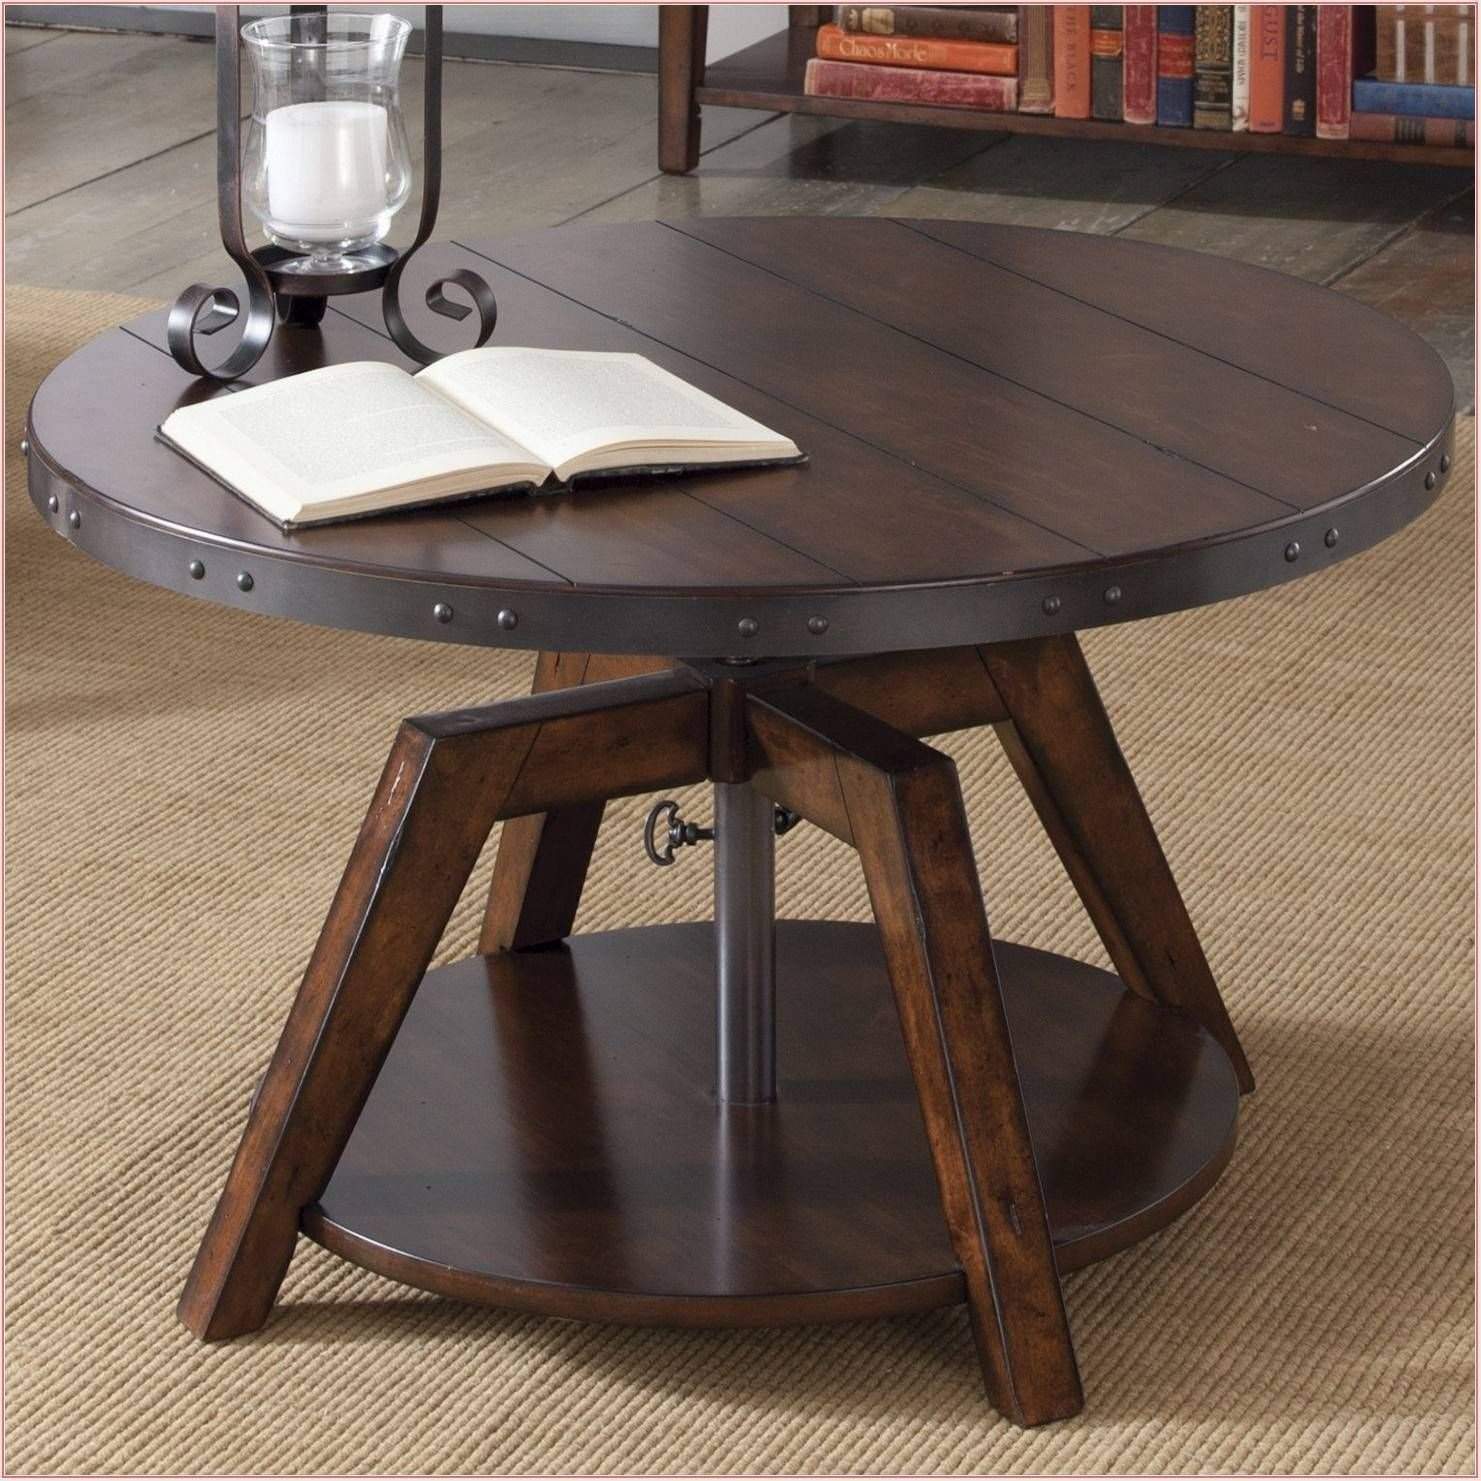 50 Amazing Convertible Coffee Table To Dining Table Up To 70 Off pertaining to dimensions 1481 X 1481